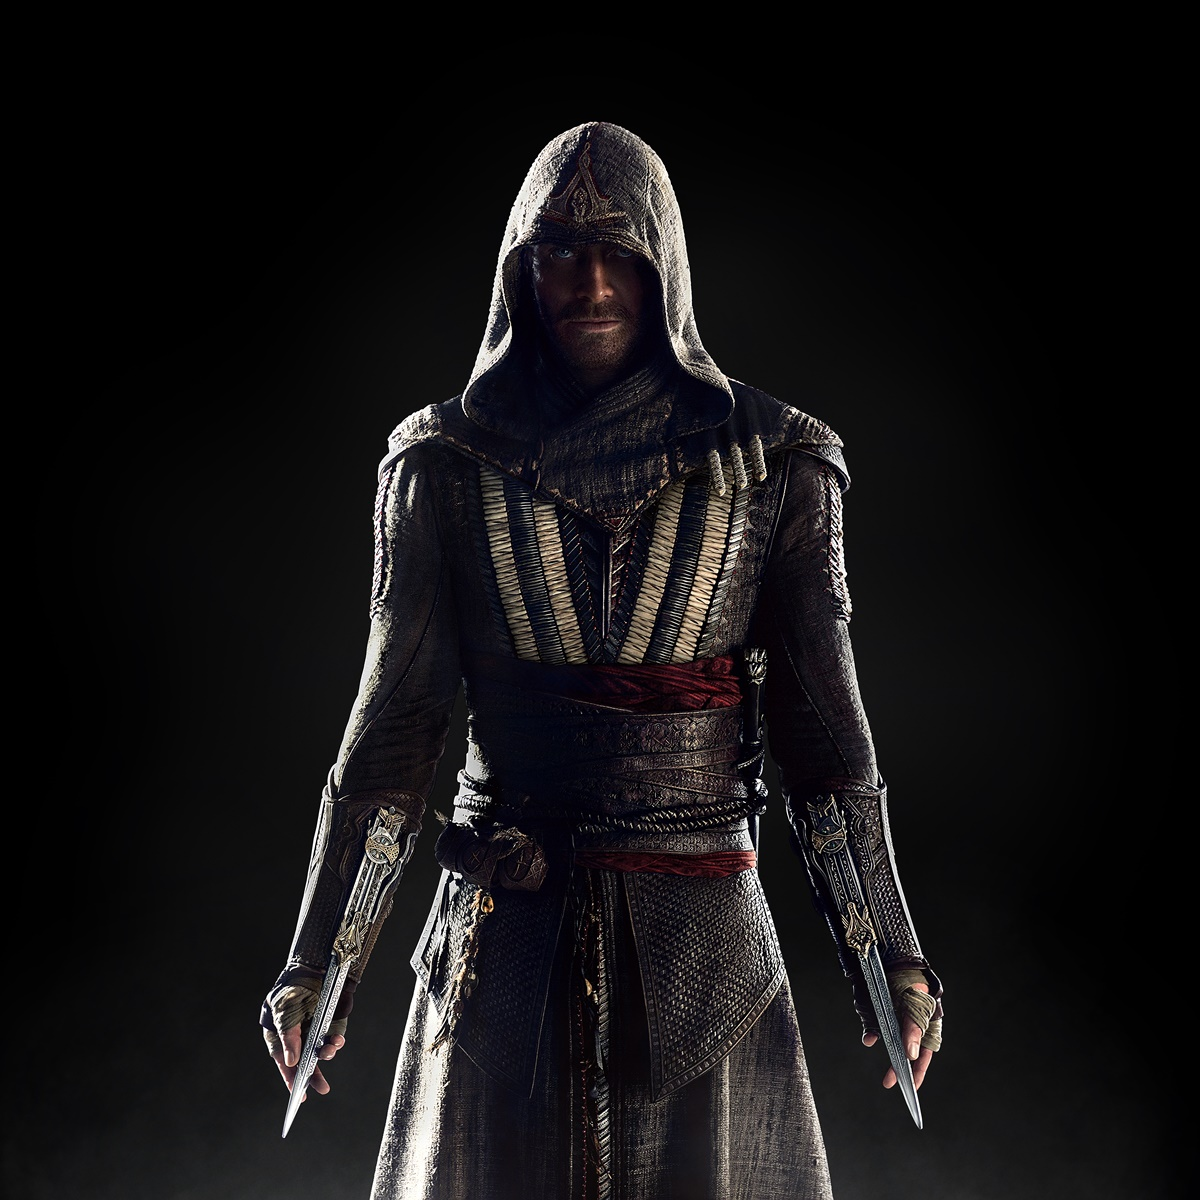 Come sarà Michael Fessbender in Assassin's Creed